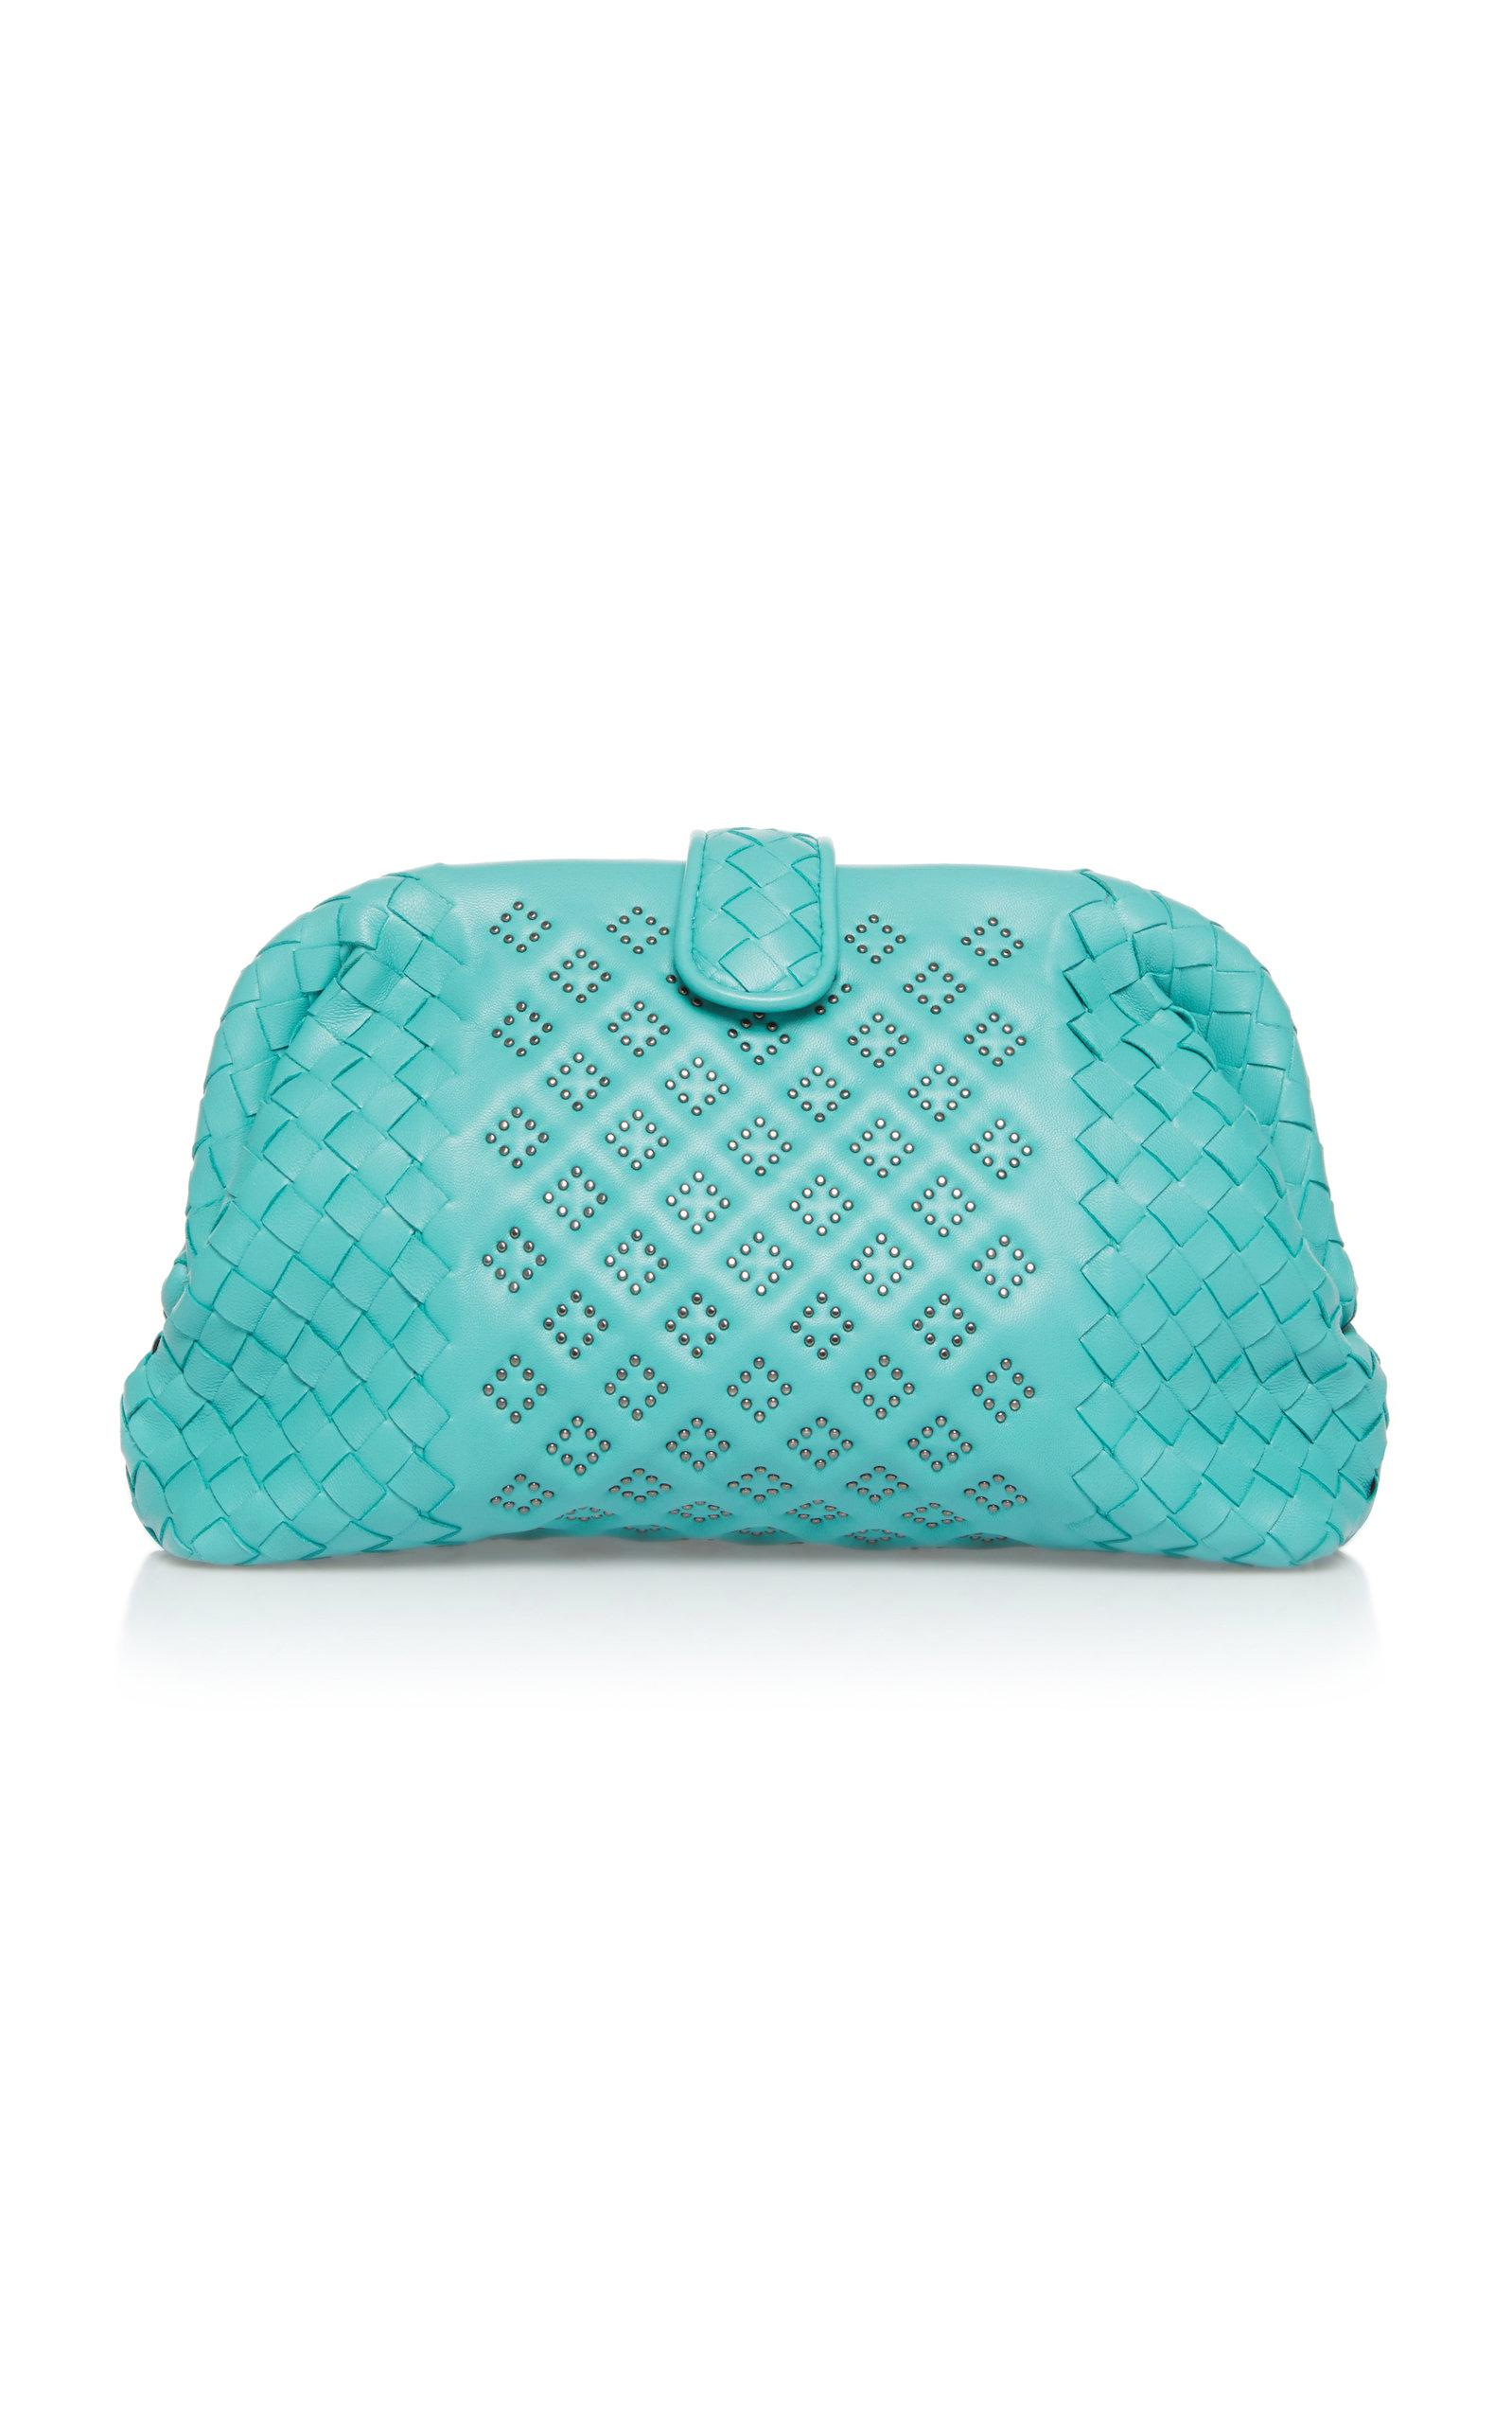 Bottega Veneta Lauren Microstud Leather Clutch In Blue